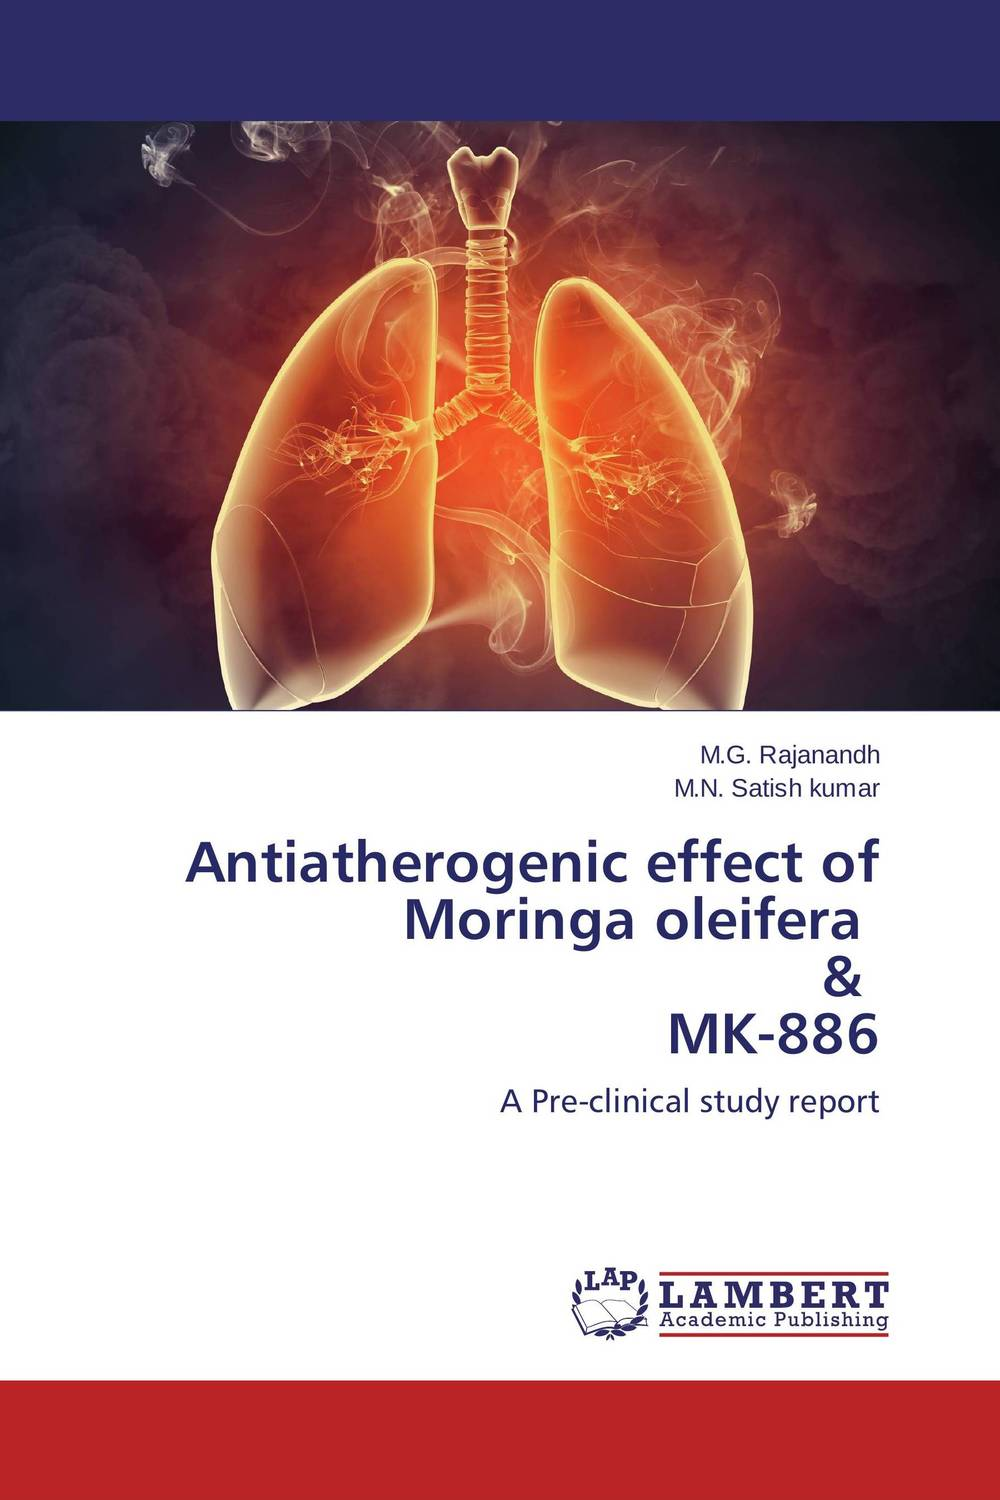 Antiatherogenic effect of Moringa oleifera & MK-886 ethnomedicinal uses of animals in india with reference to asthma